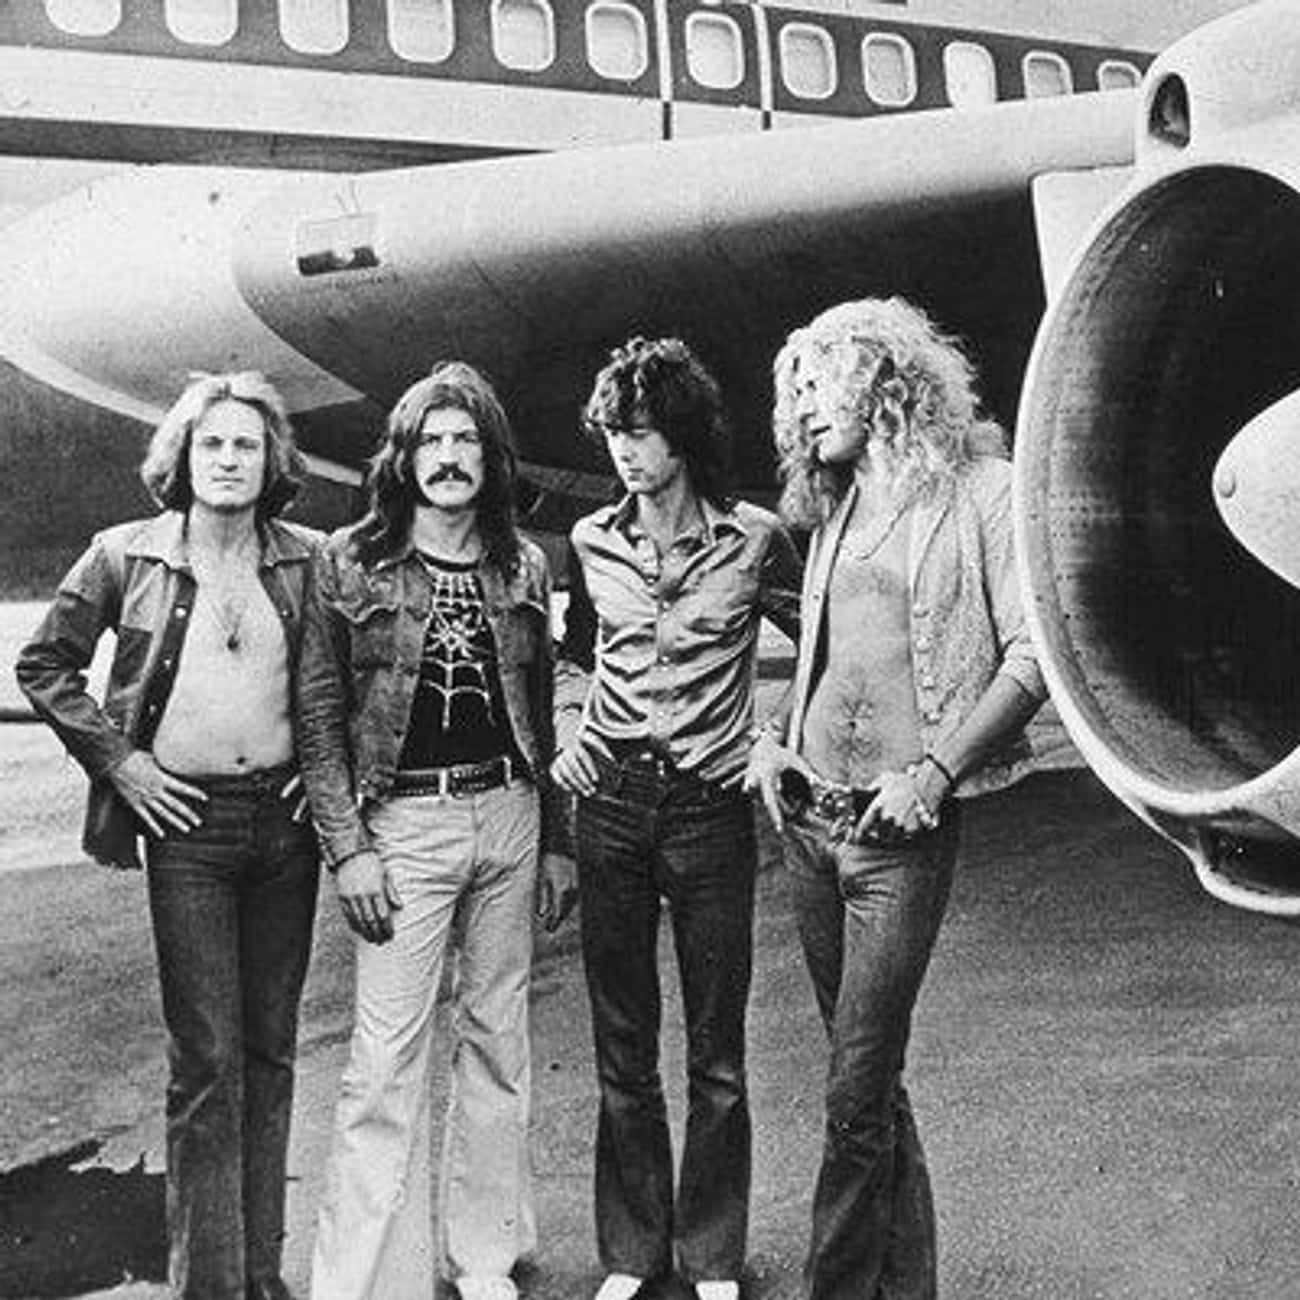 Led Zeppelin is listed (or ranked) 2 on the list The Best Band Name Origin Stories